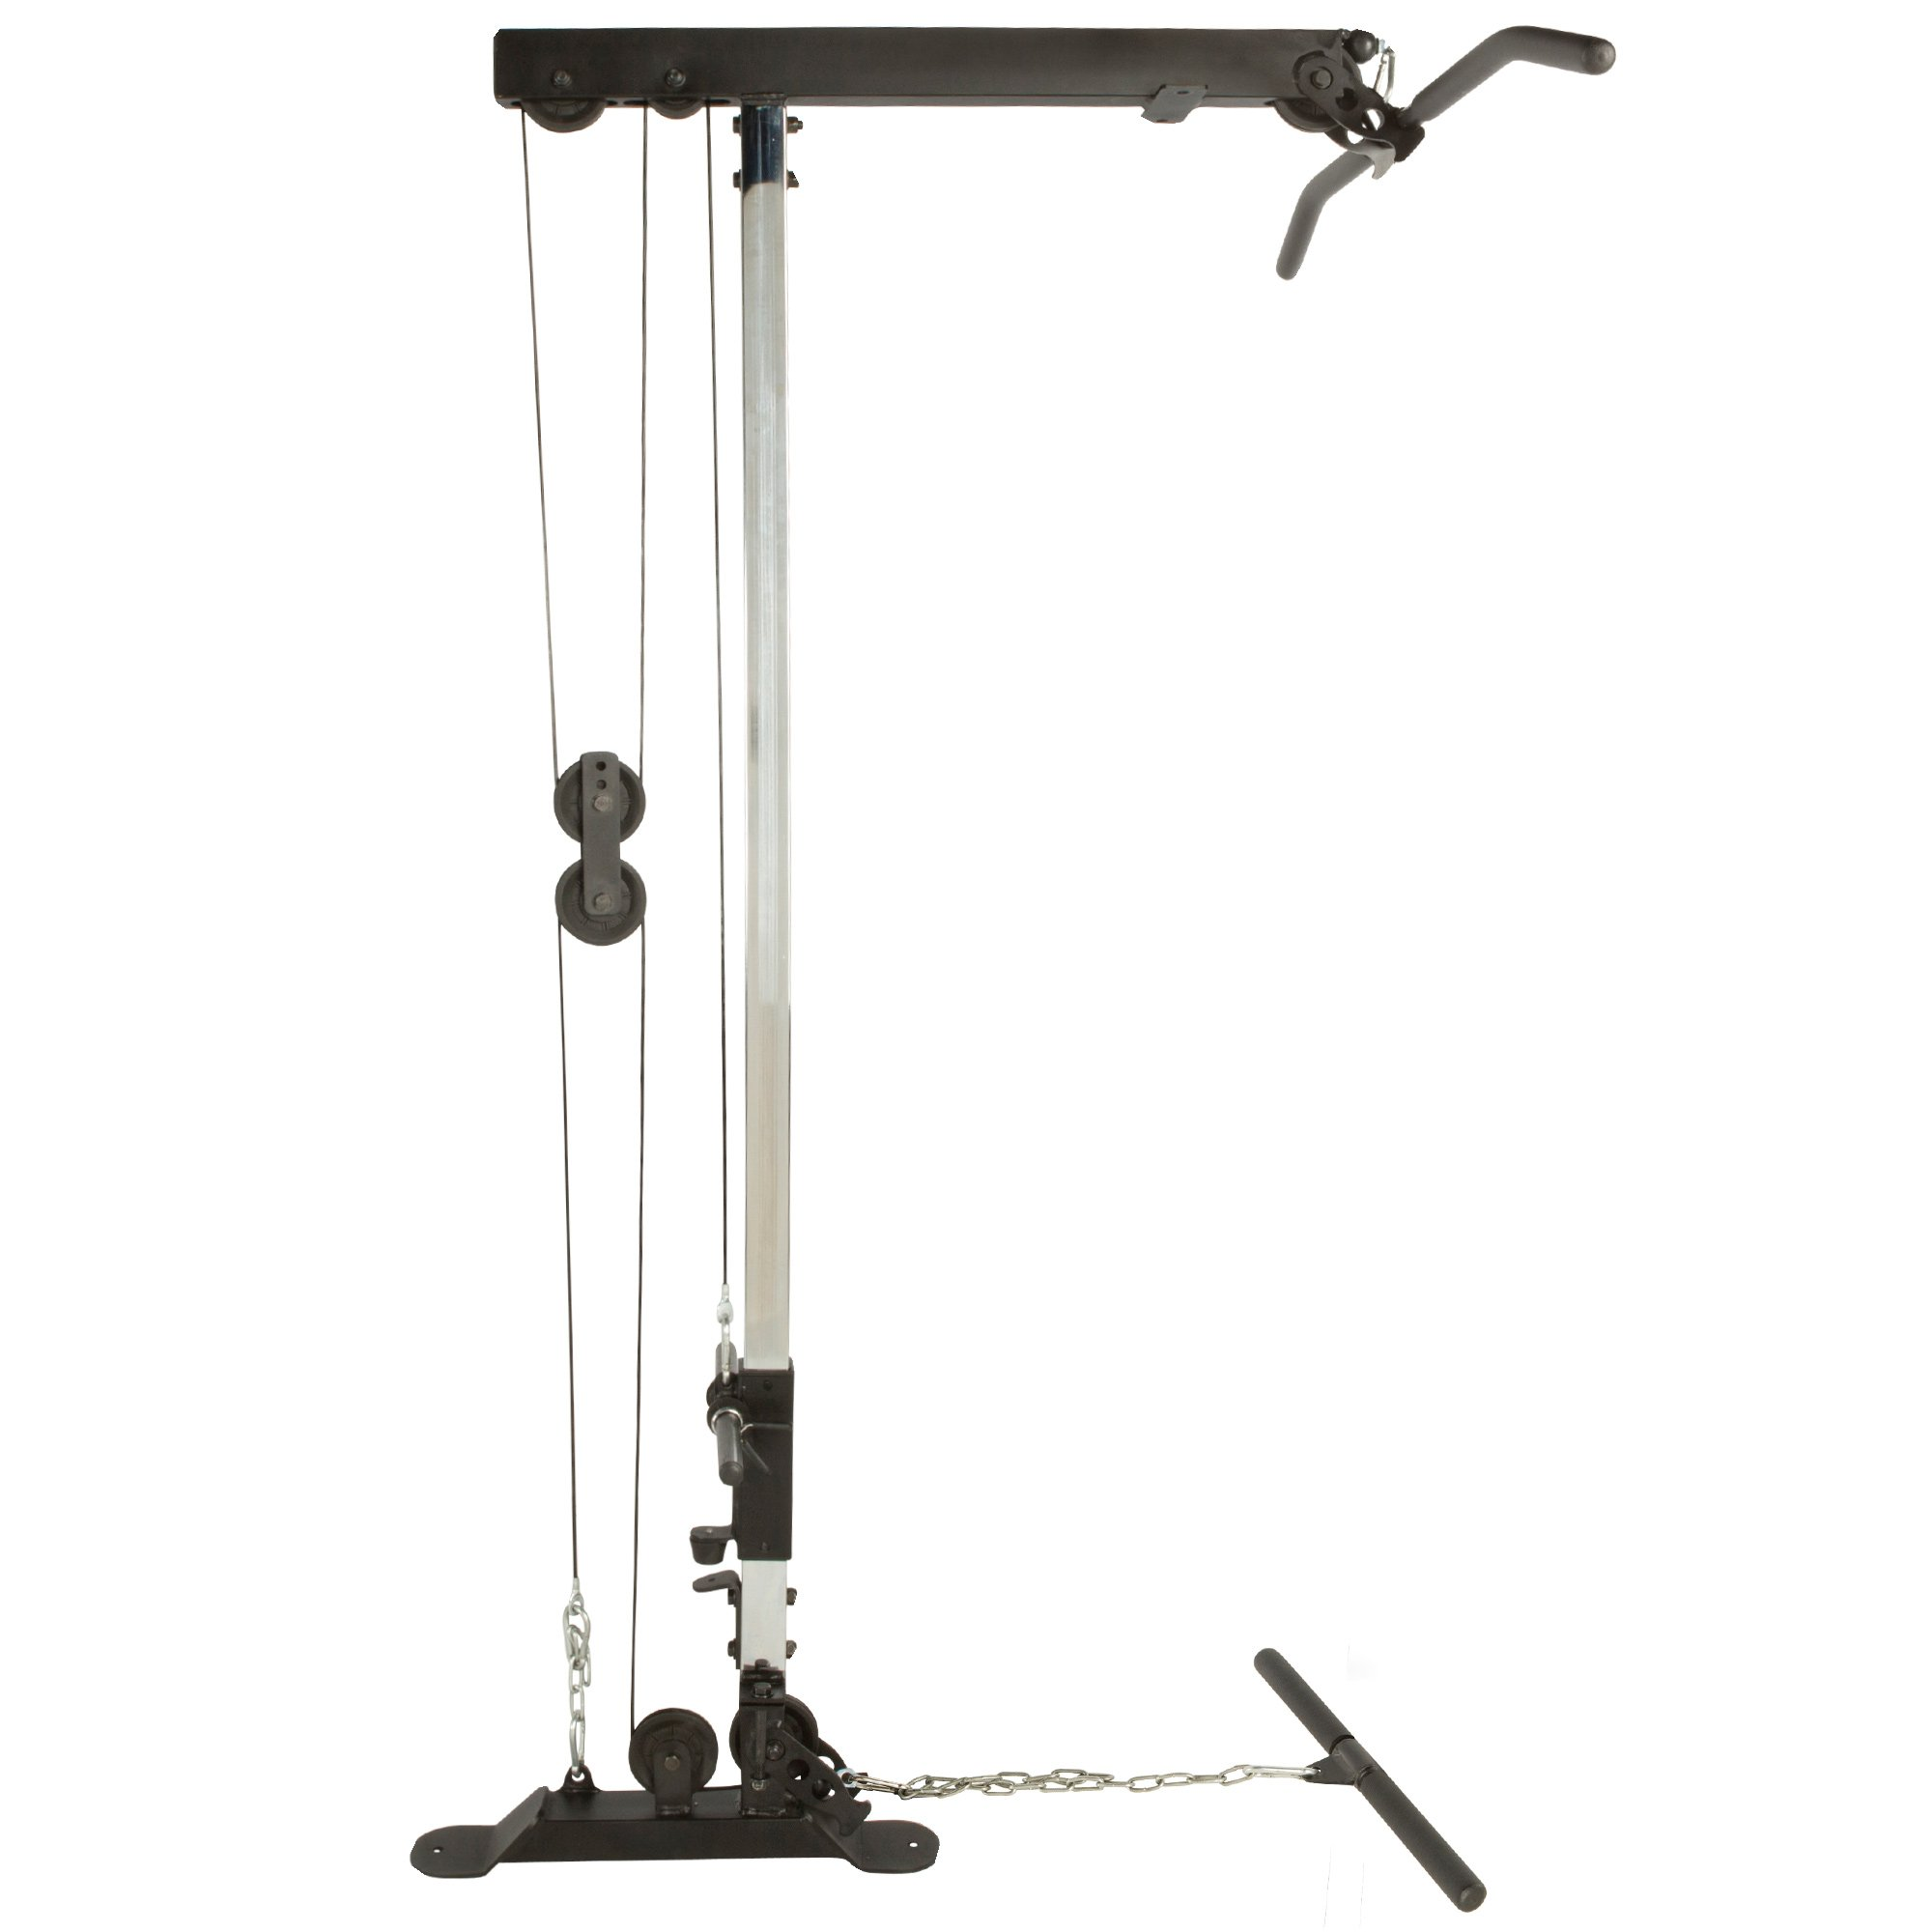 IRONMAN Triathlon X-Class Light Commercial Olympic Lat Pull Down & Low Row Cable Attachment